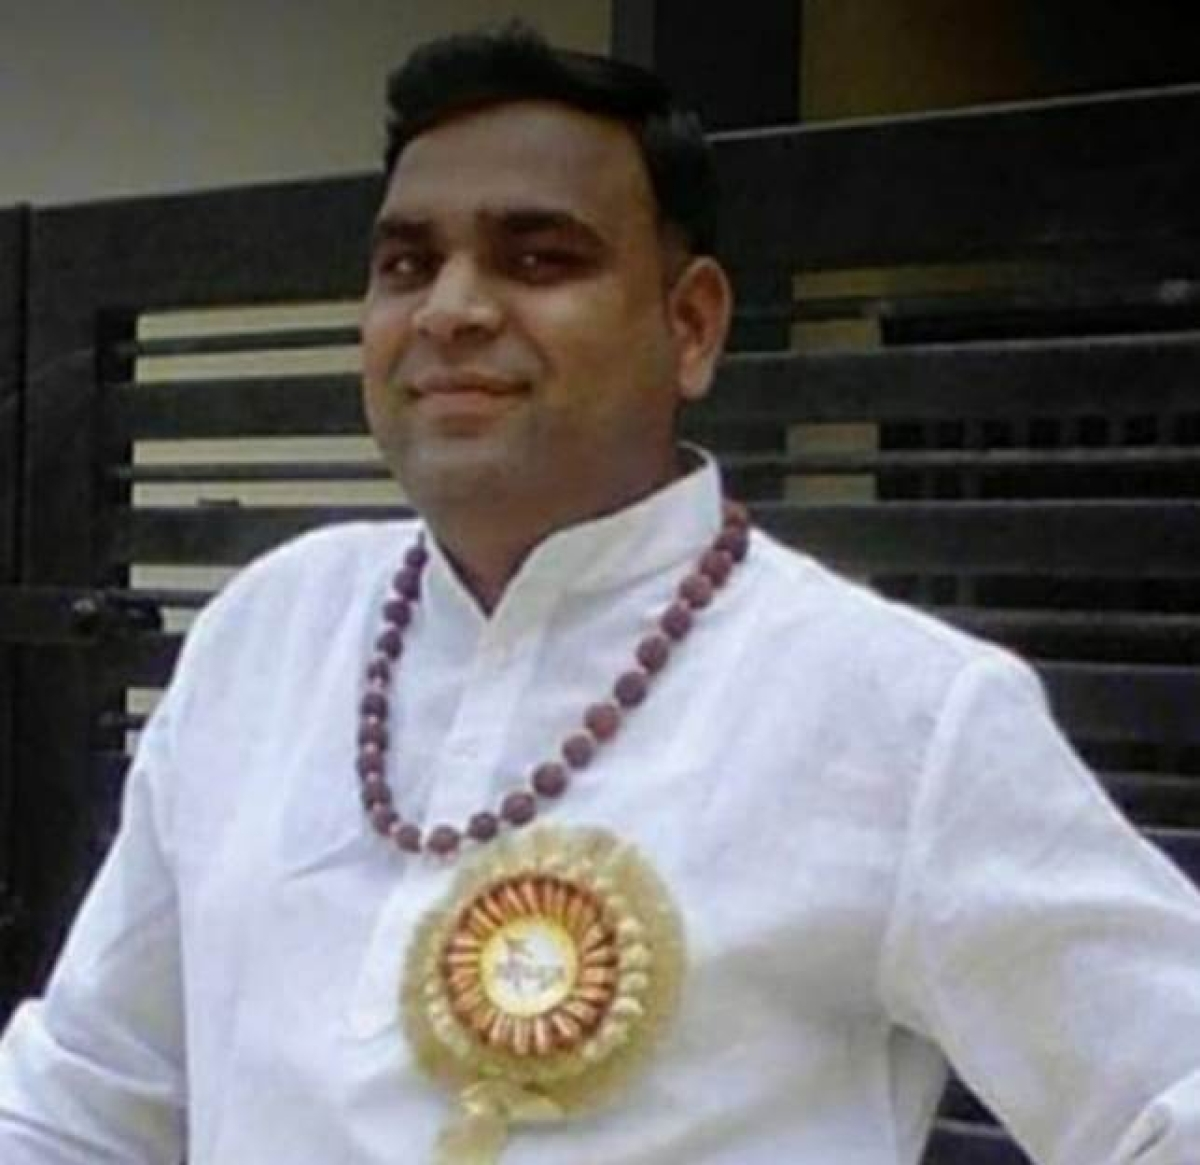 Vishal Soni (40), former teacher of Saraswati Shishu Mandir, Marutiganj, director of Genius Point Coaching Classes and vice-principal of Bharatiya Gyanpeeth, Mahananda Nagar died due to corona infection on Sunday. After testing positive, he was hospitalised for treatment. Local teaching fraternity mourned the untimely and sudden departure of Soni